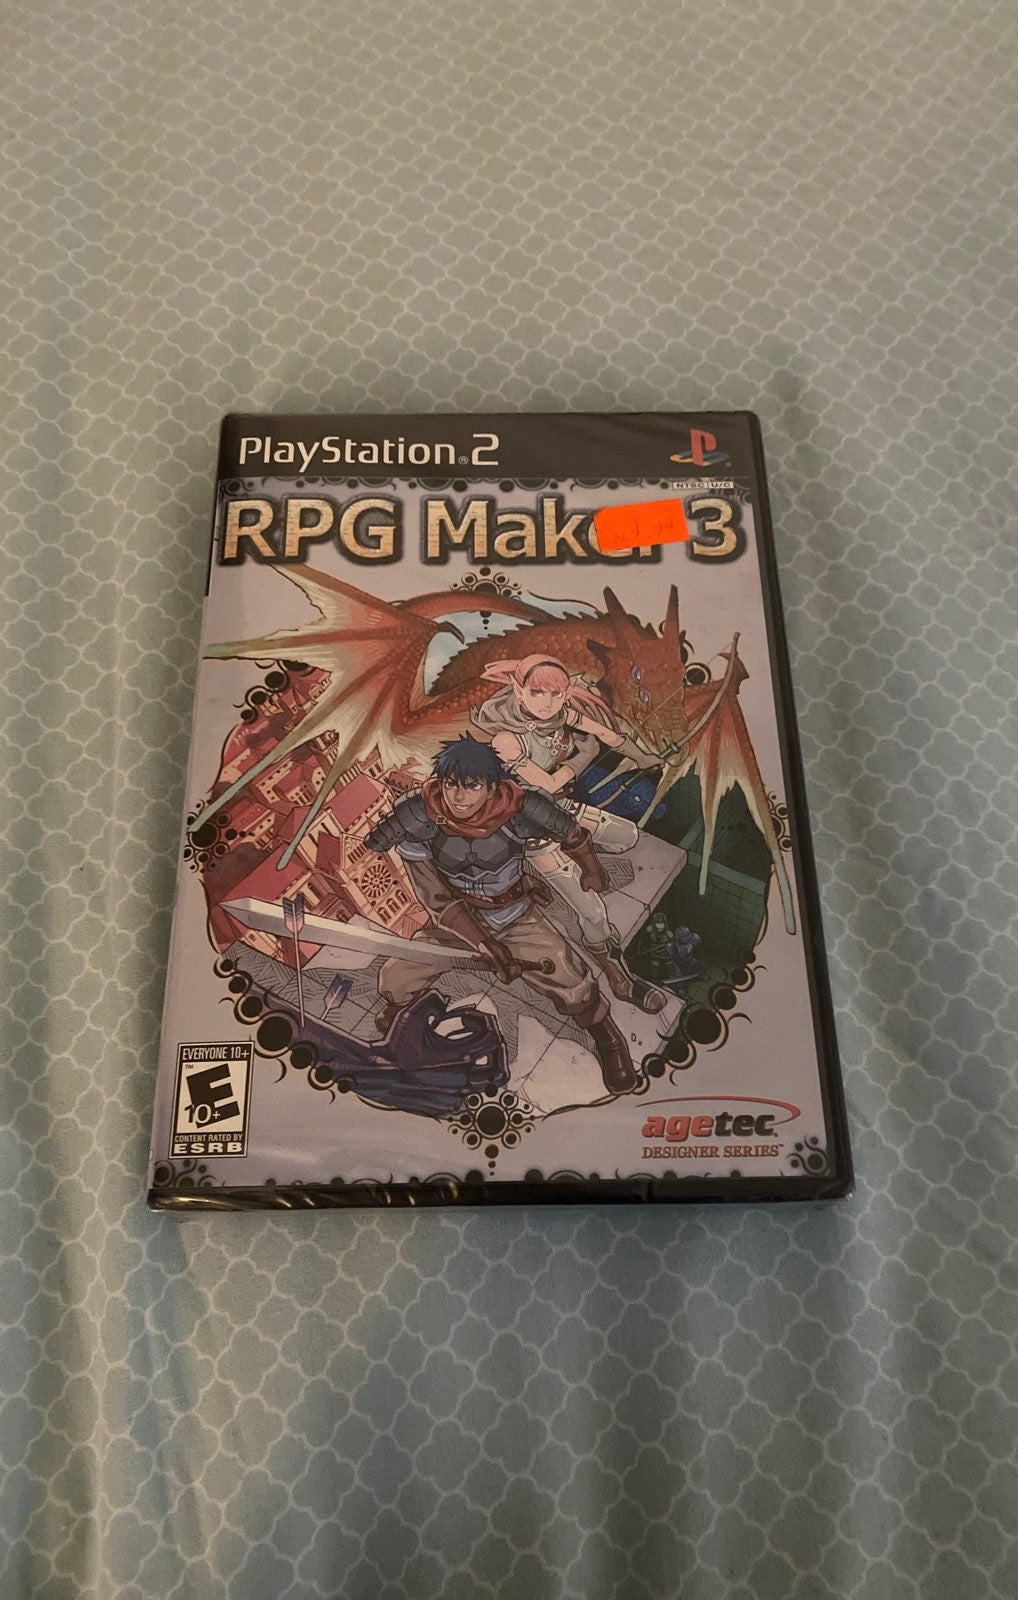 RPG Maker 3 PS2 (New, Factory Sealed)